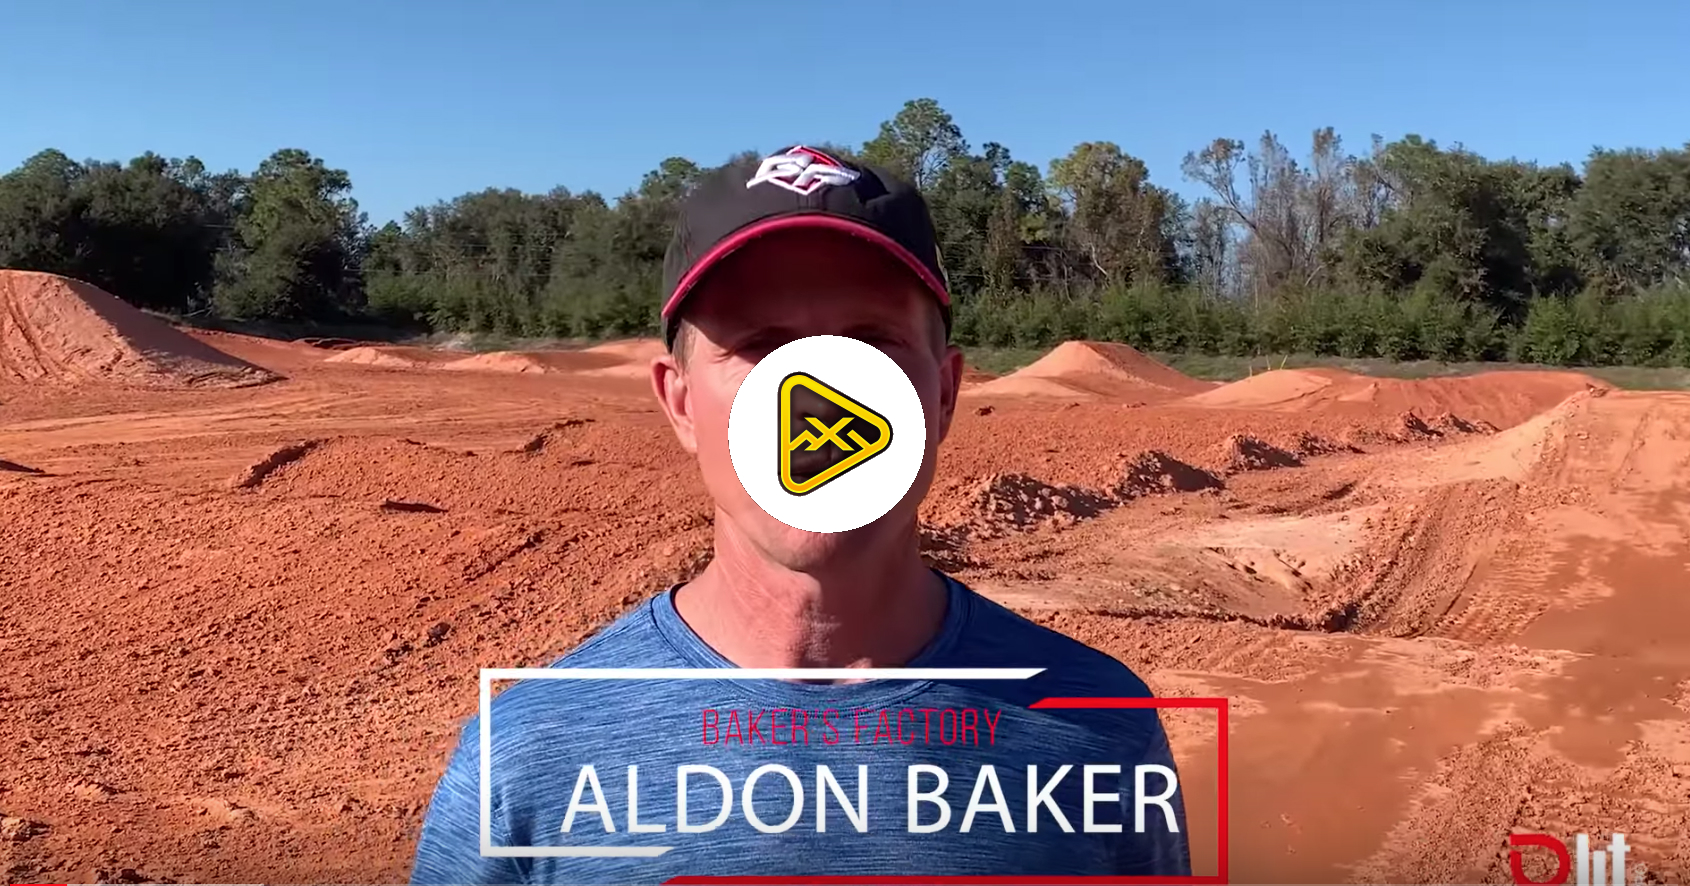 5 Min with Aldon Baker on Heart Rate